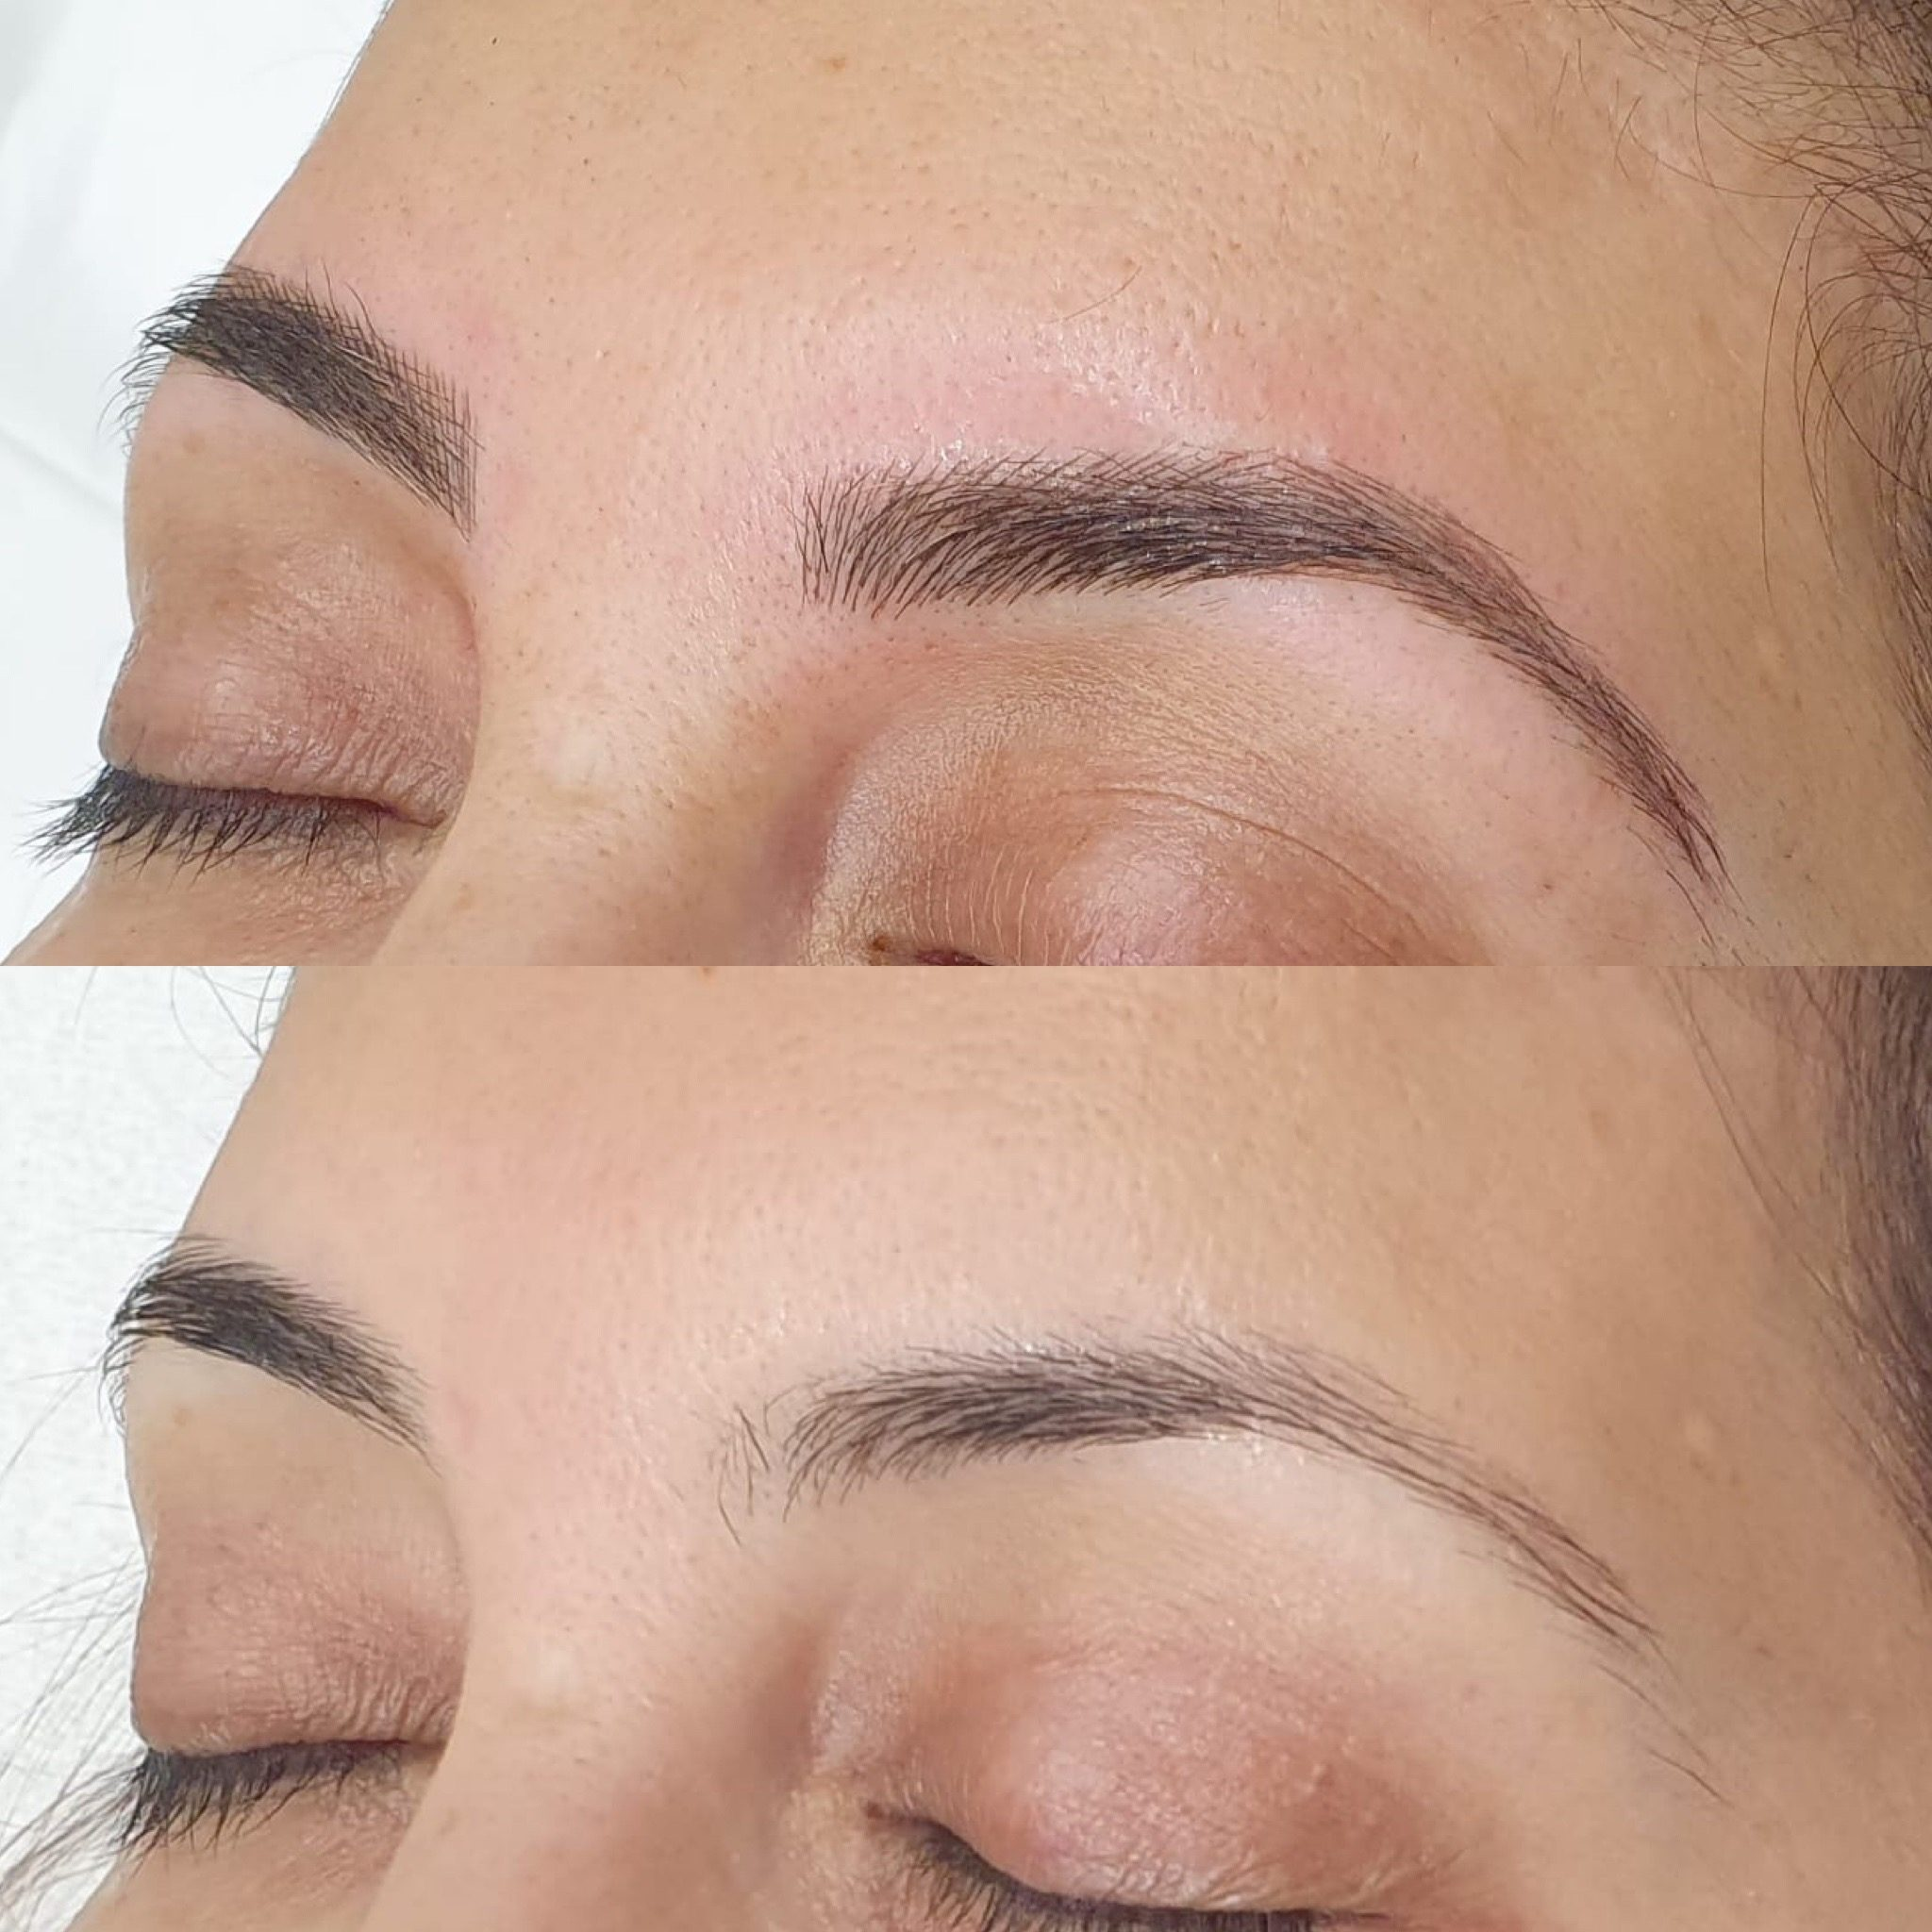 Before and after eyebrow pic shows they look much fuller after Brau service.